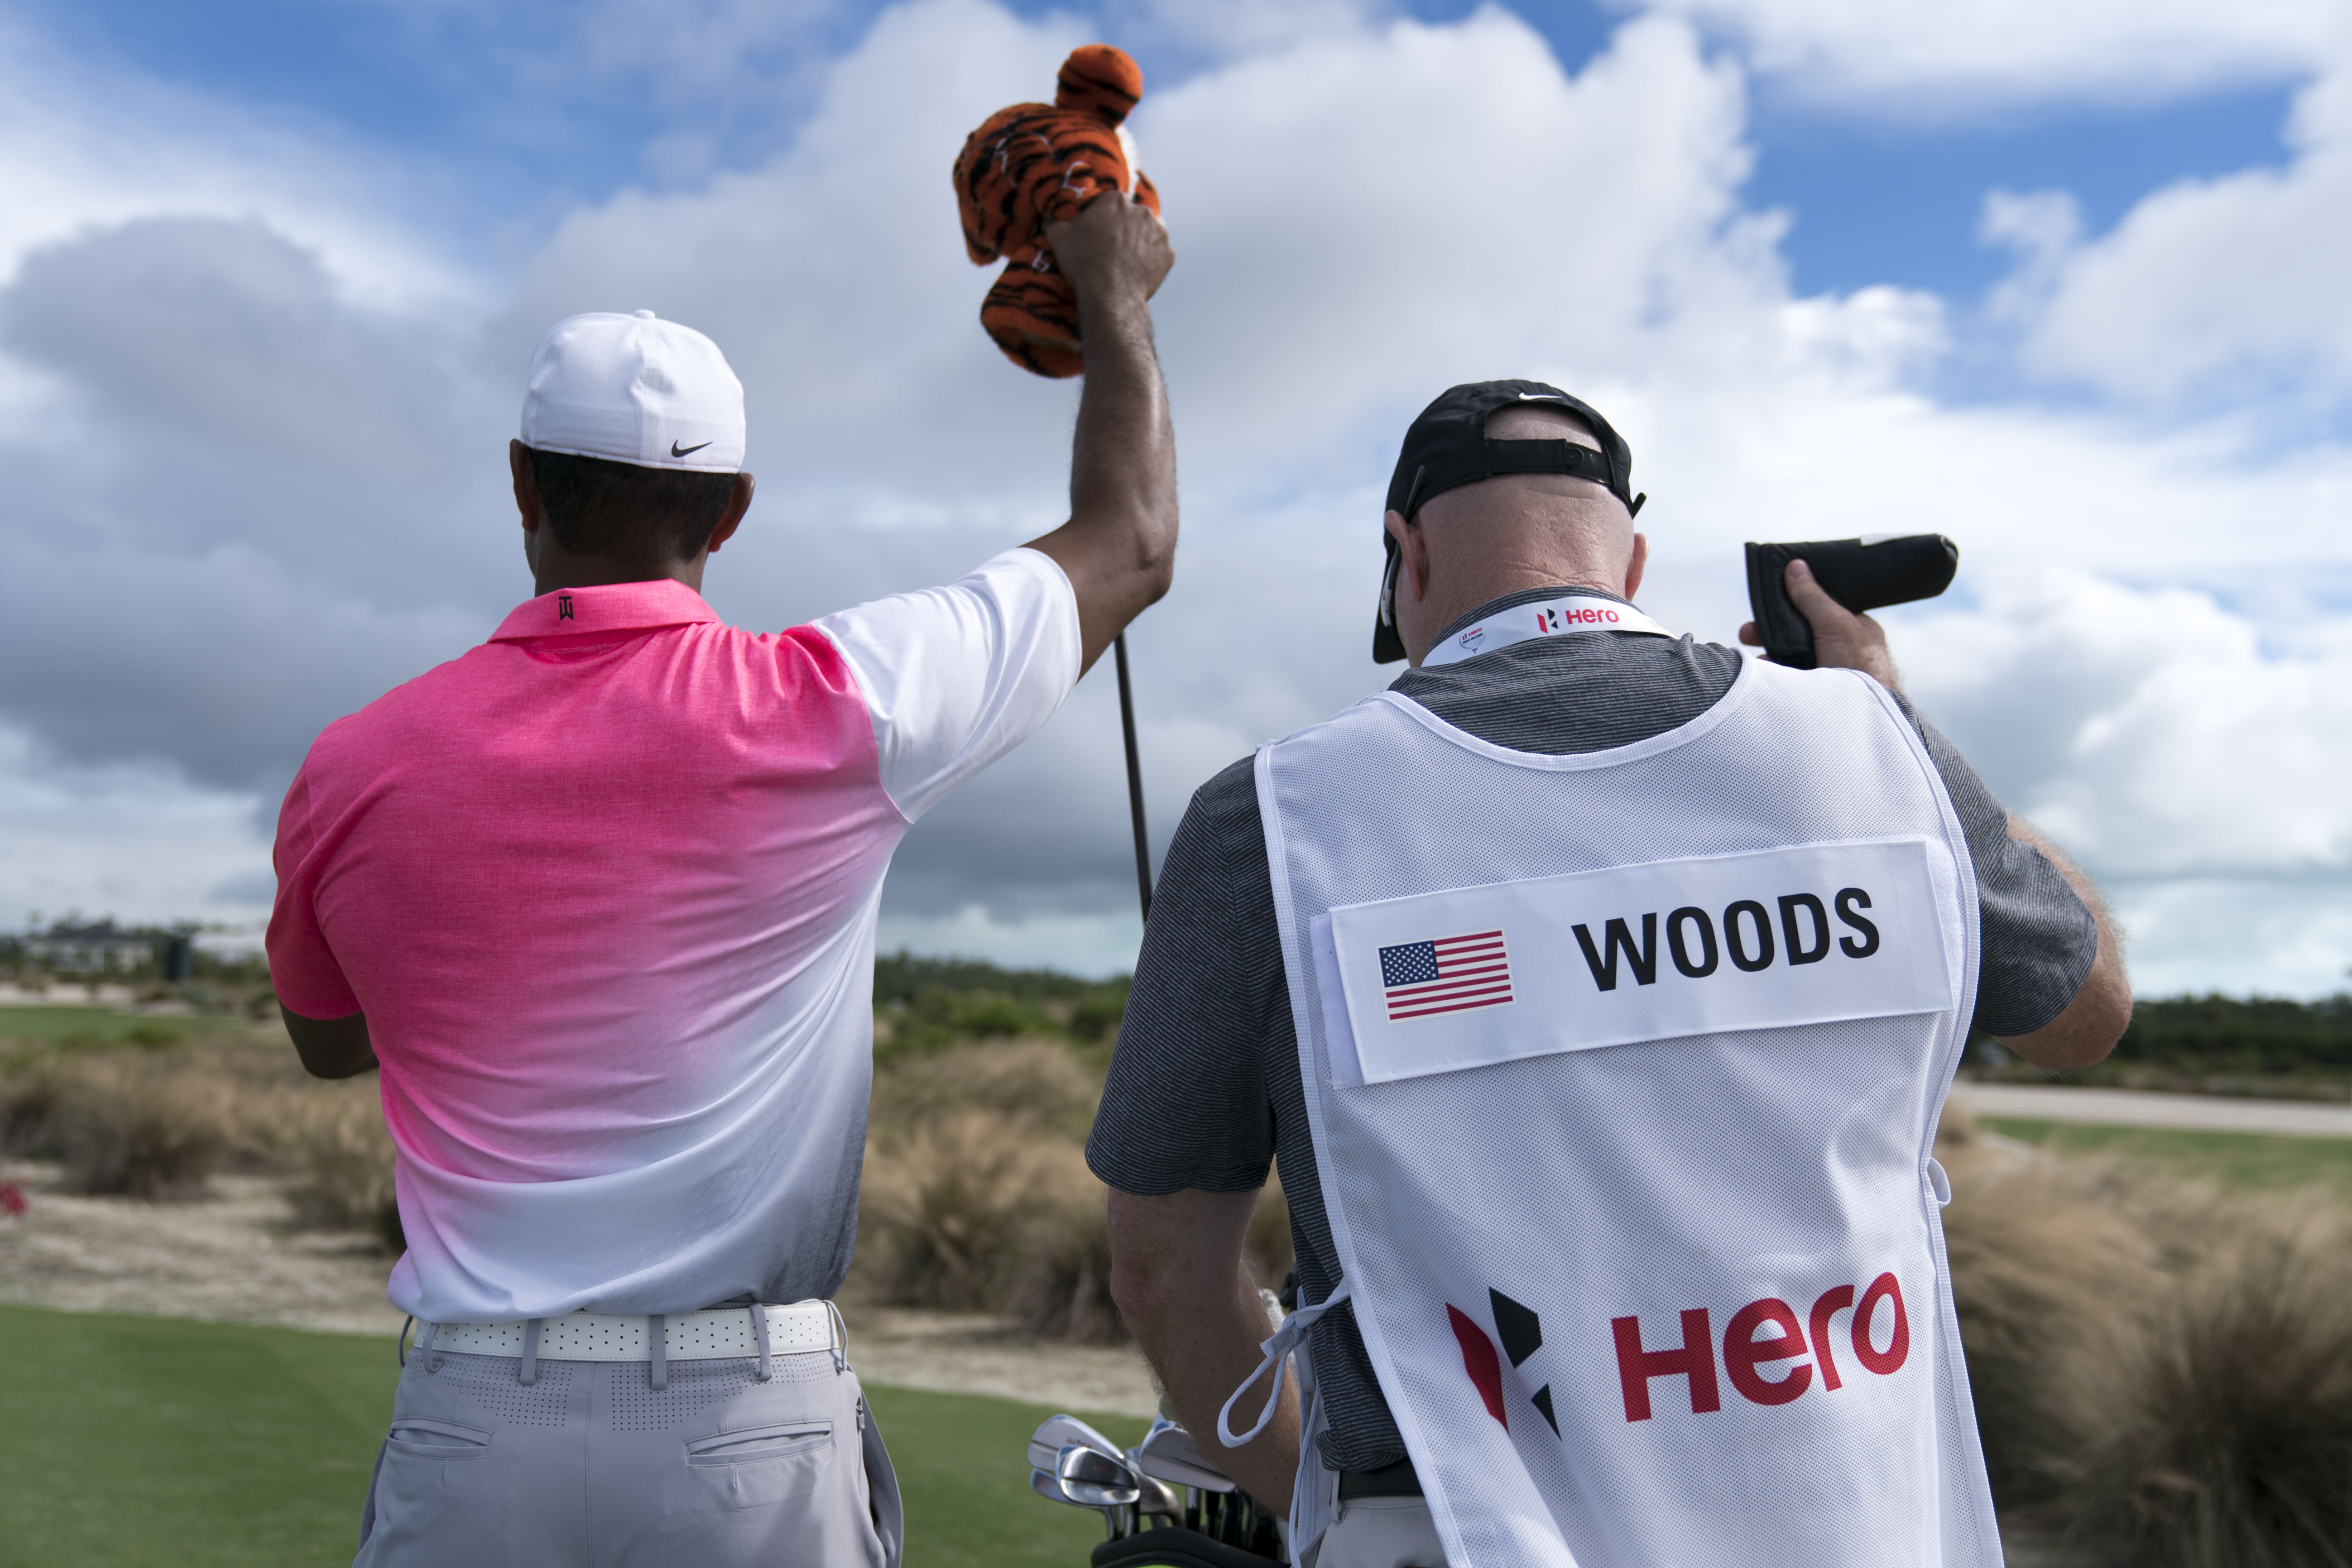 Nov 29, 2017; New Providence, The Bahamas; Tiger Woods pulls out his driver on the 14th hole during a pro-am for the Hero World Challenge golf tournament at Albany. Mandatory Credit: Kyle Terada-USA TODAY Sports